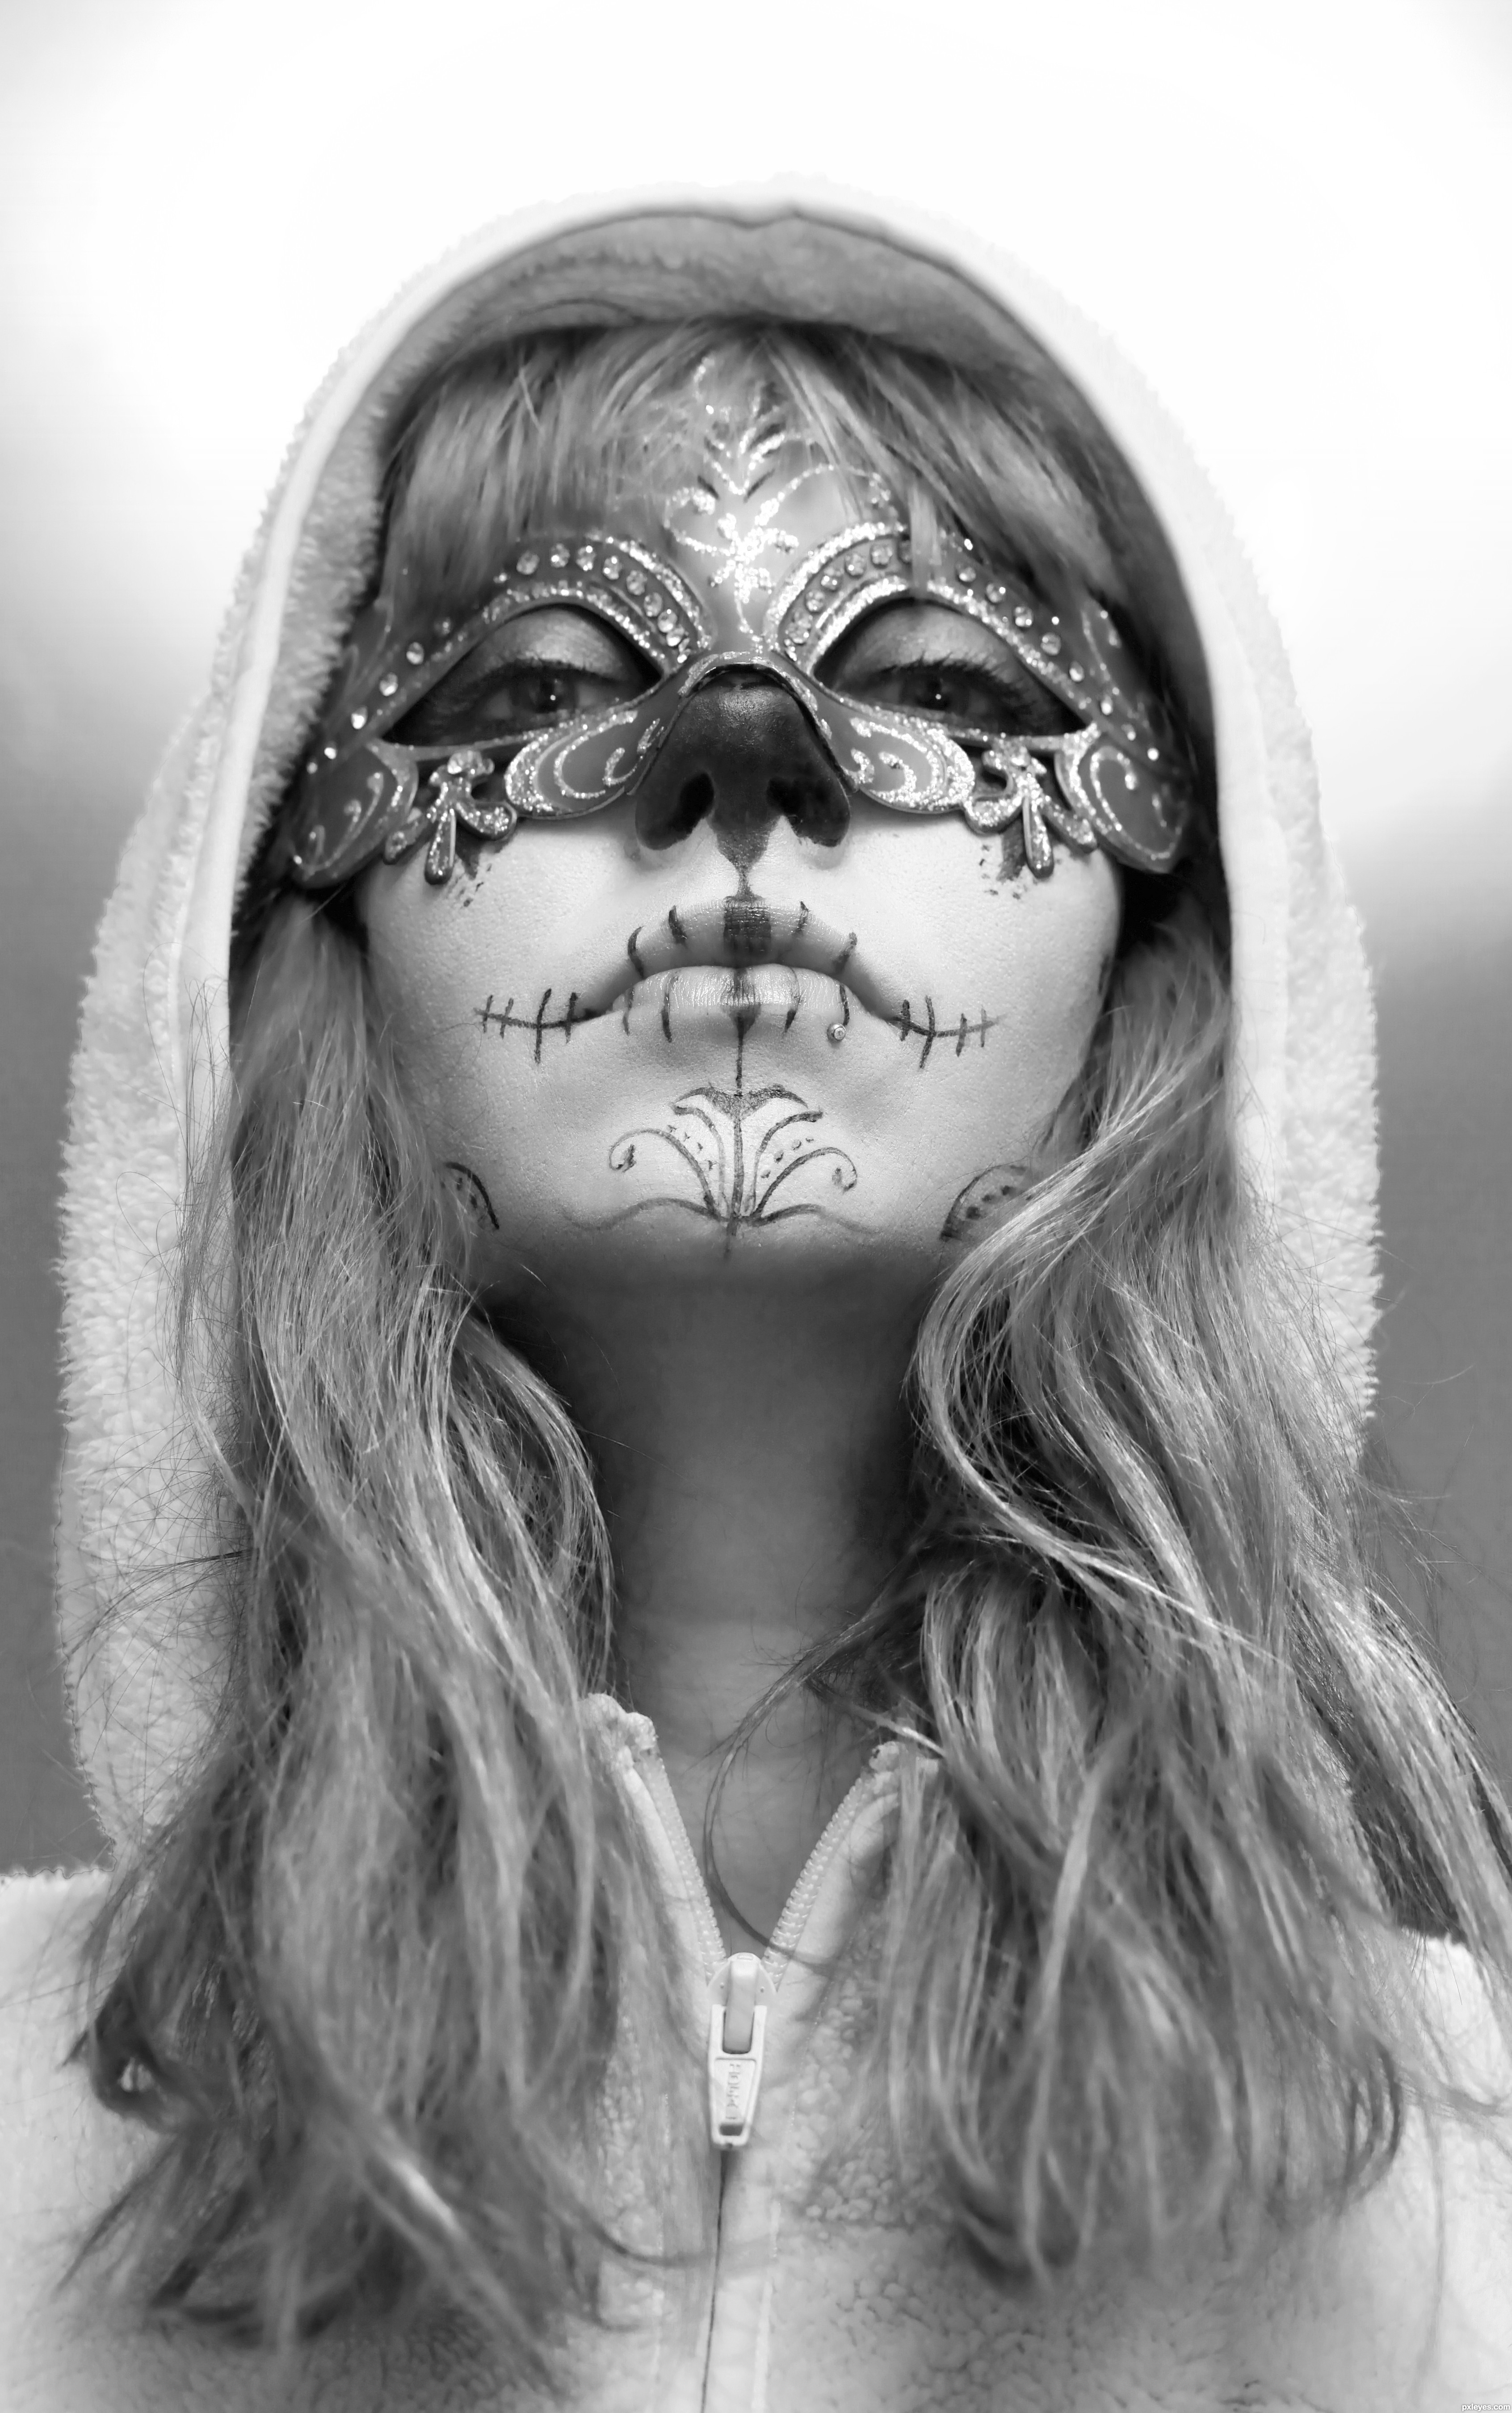 Masquerade Picture By TwilightMuse For Masks 3 Photography Contest